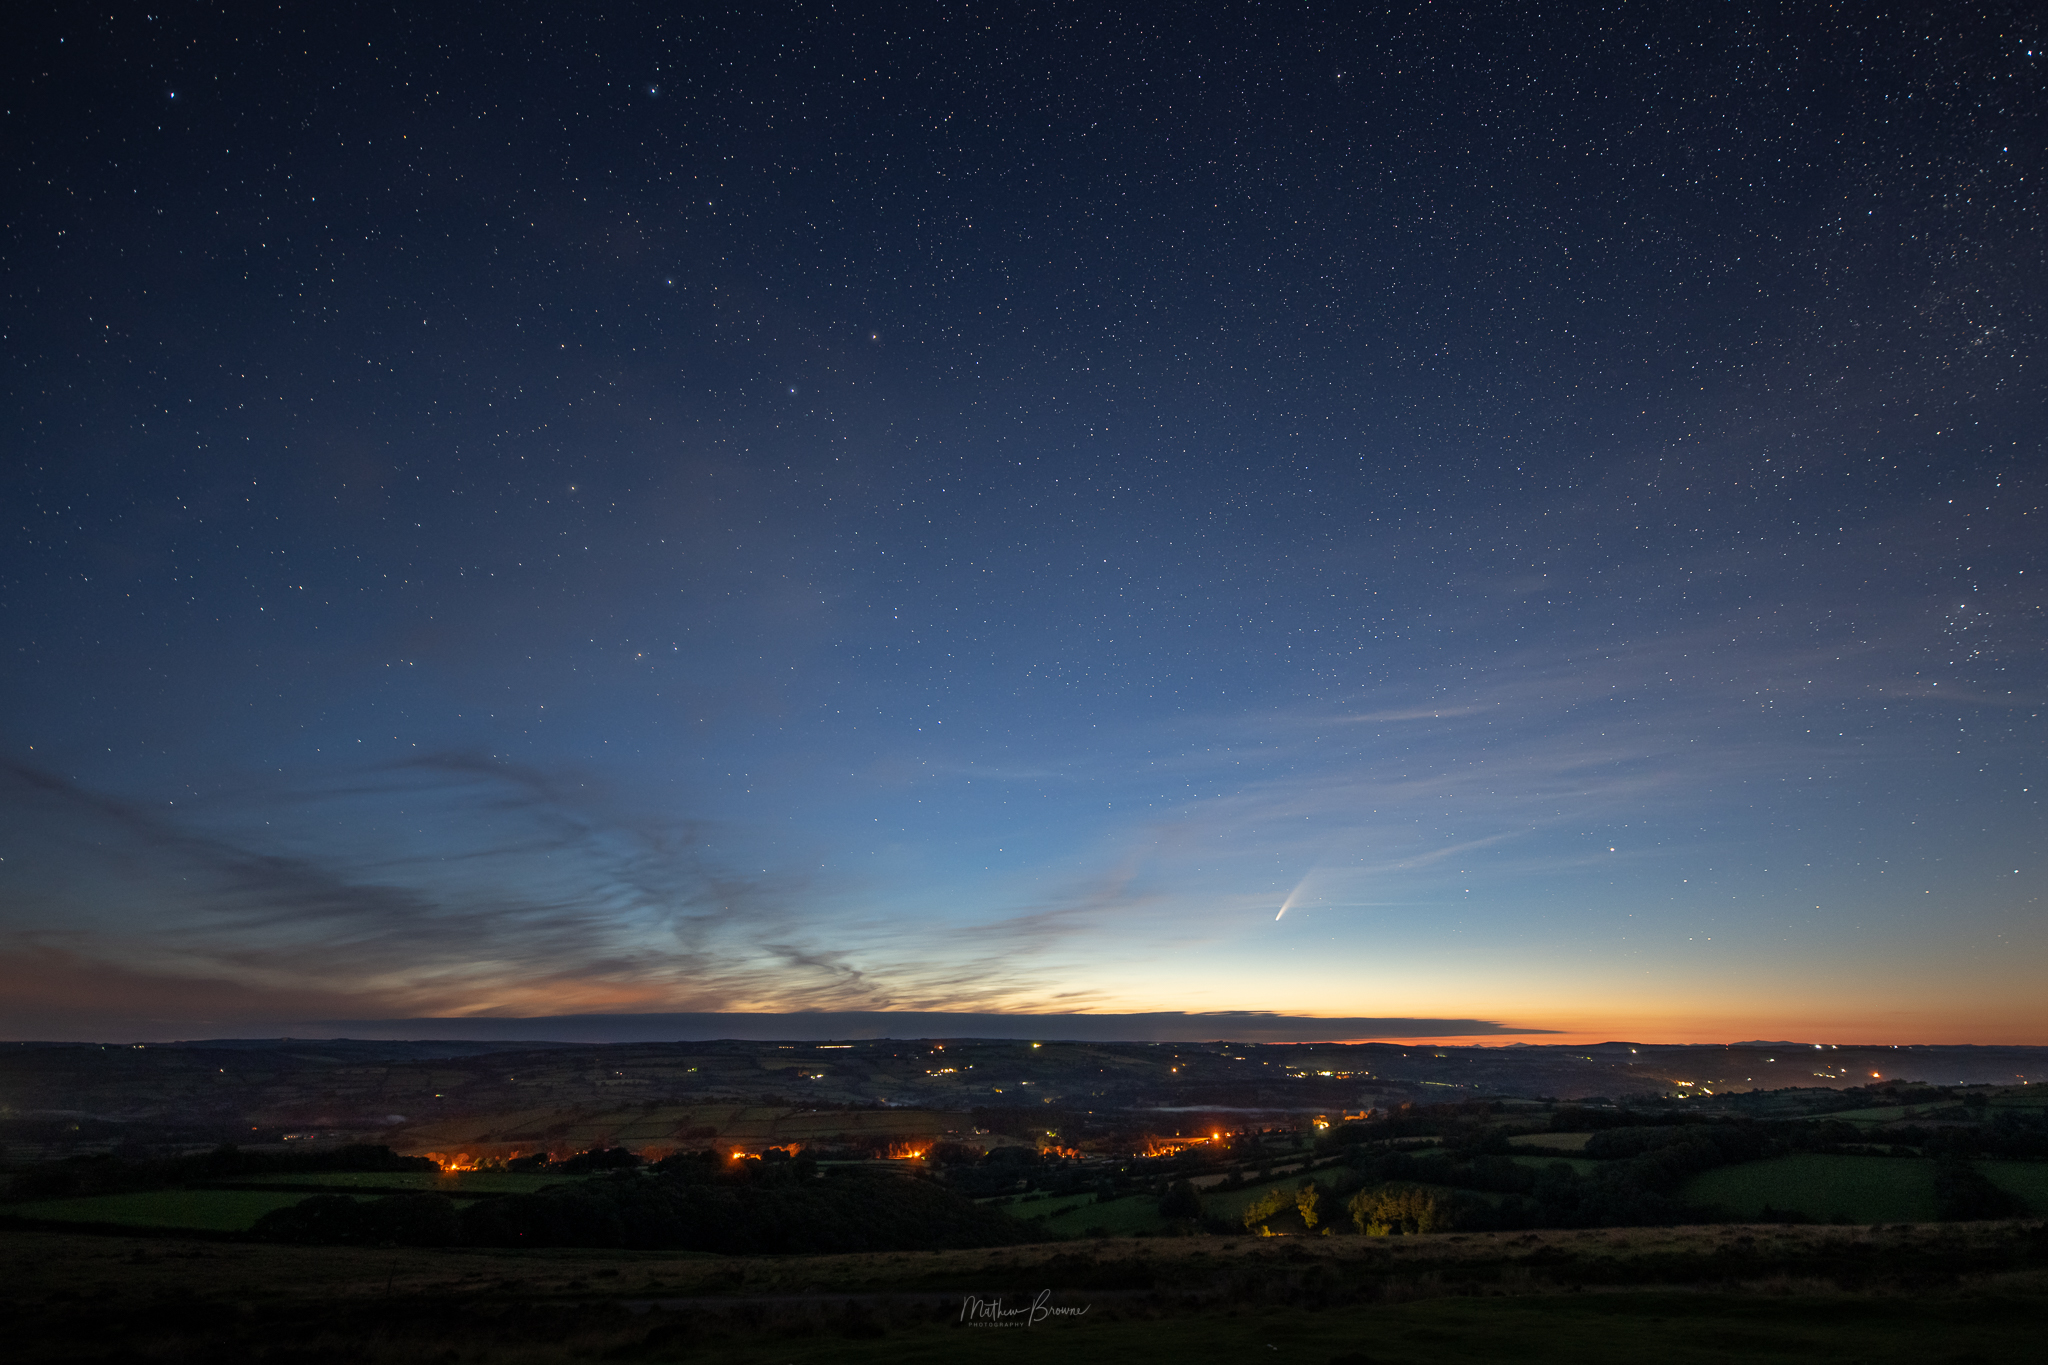 Llanllwni, Carmarthenshire, with comet NEOWISE